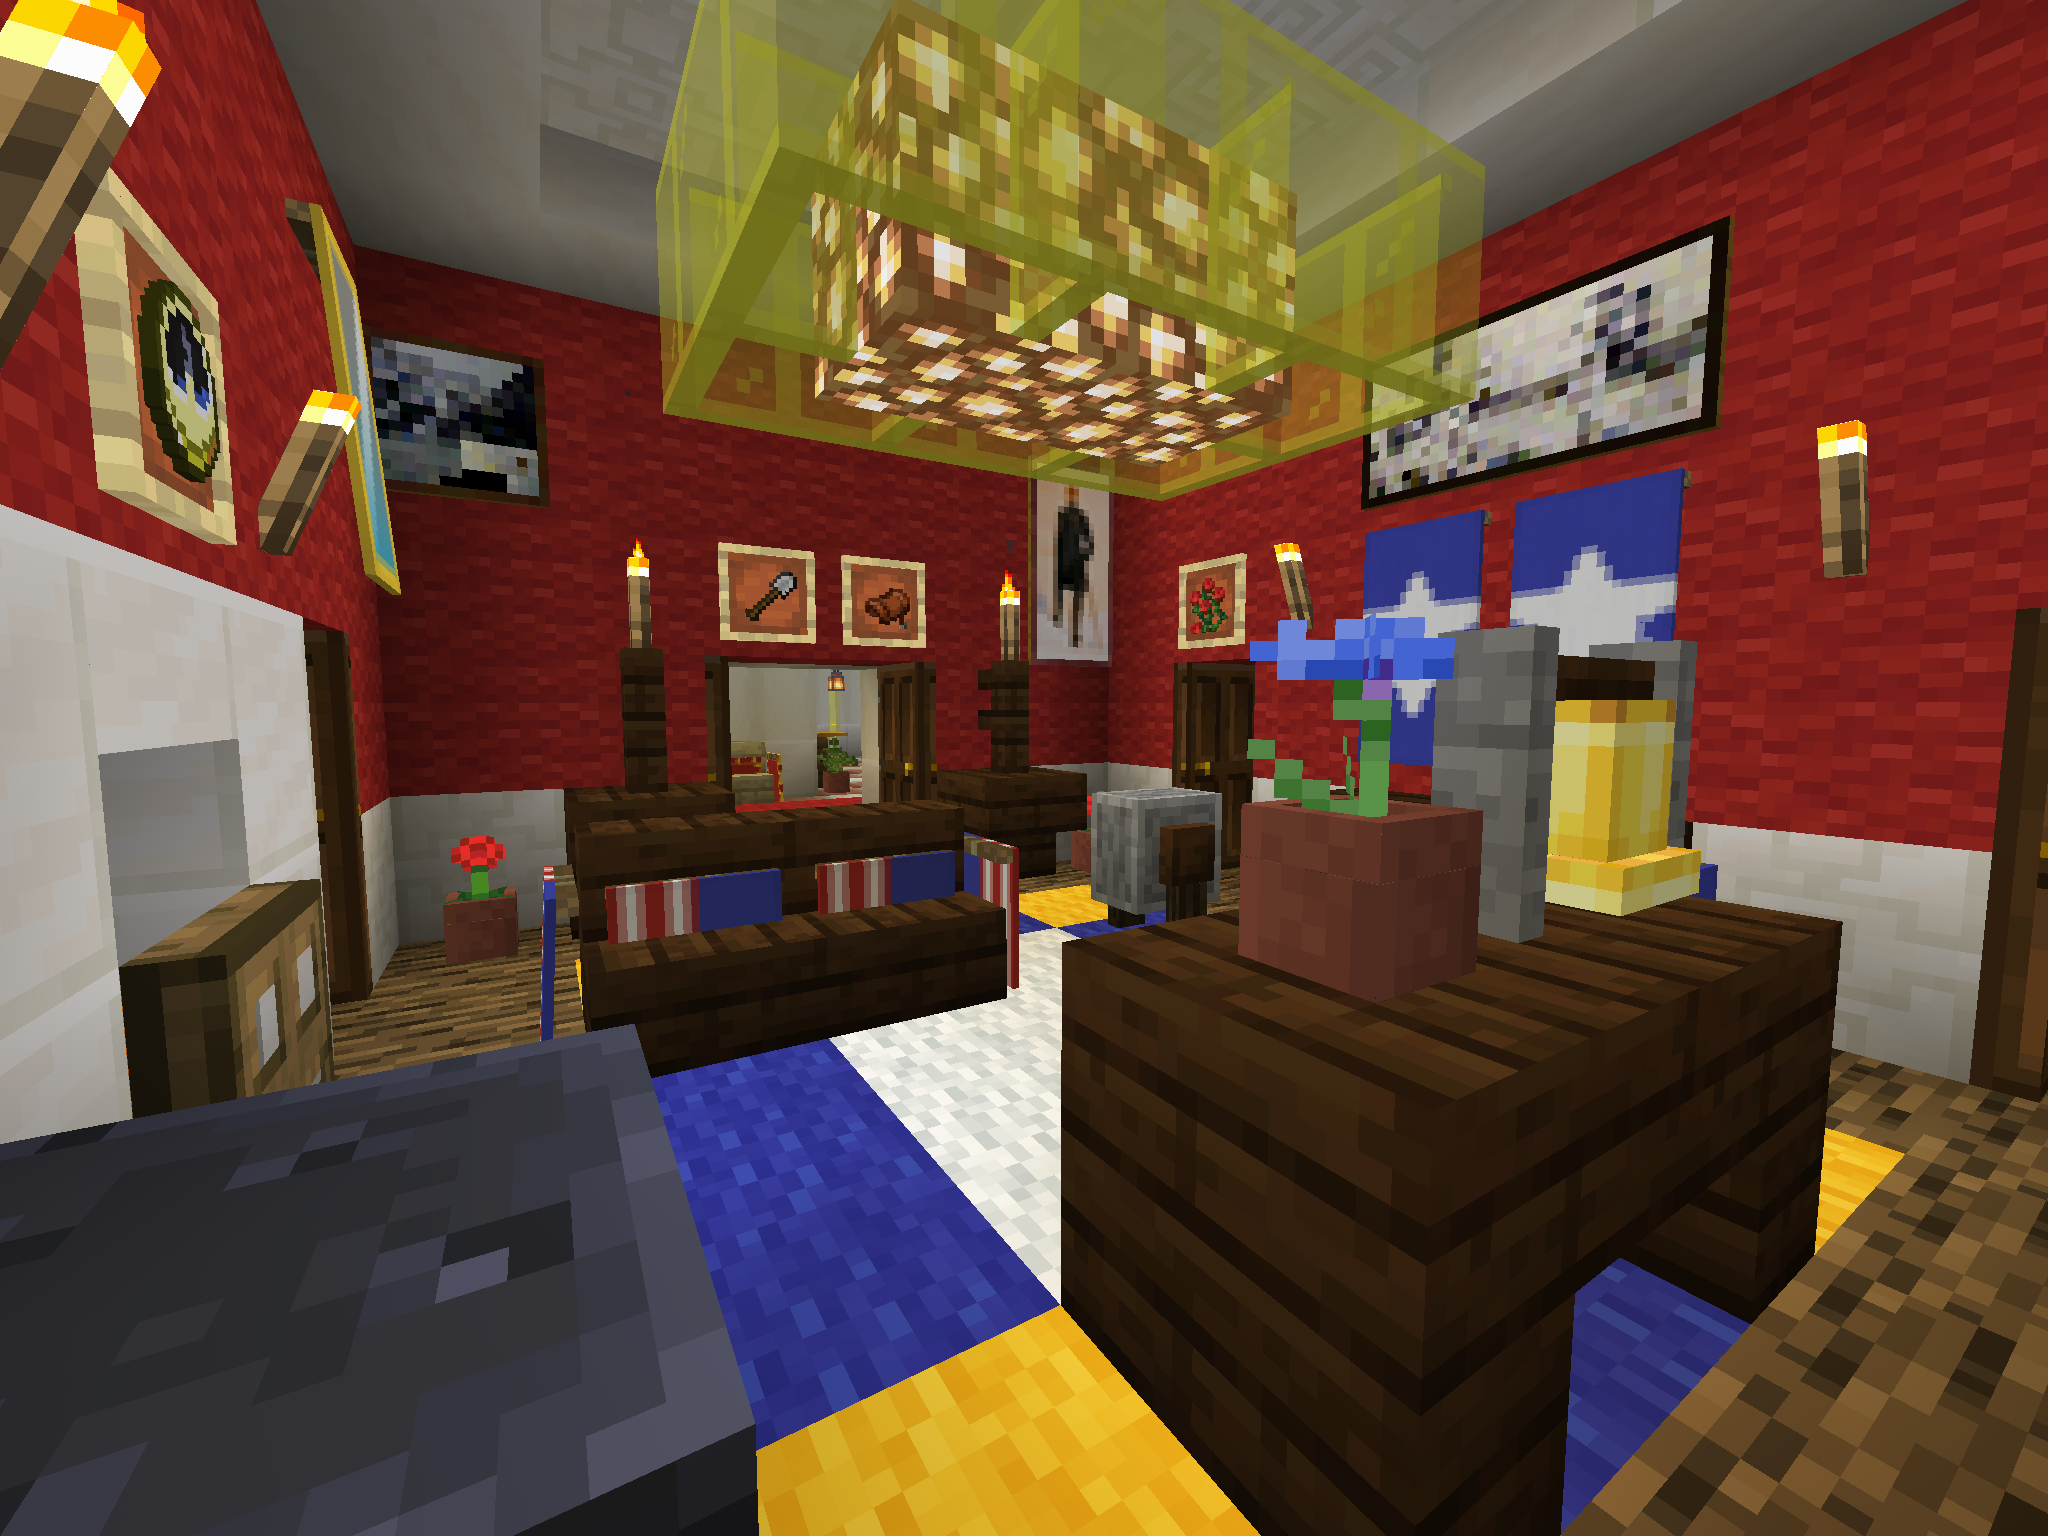 Pin On Minecraft House Interior Designs